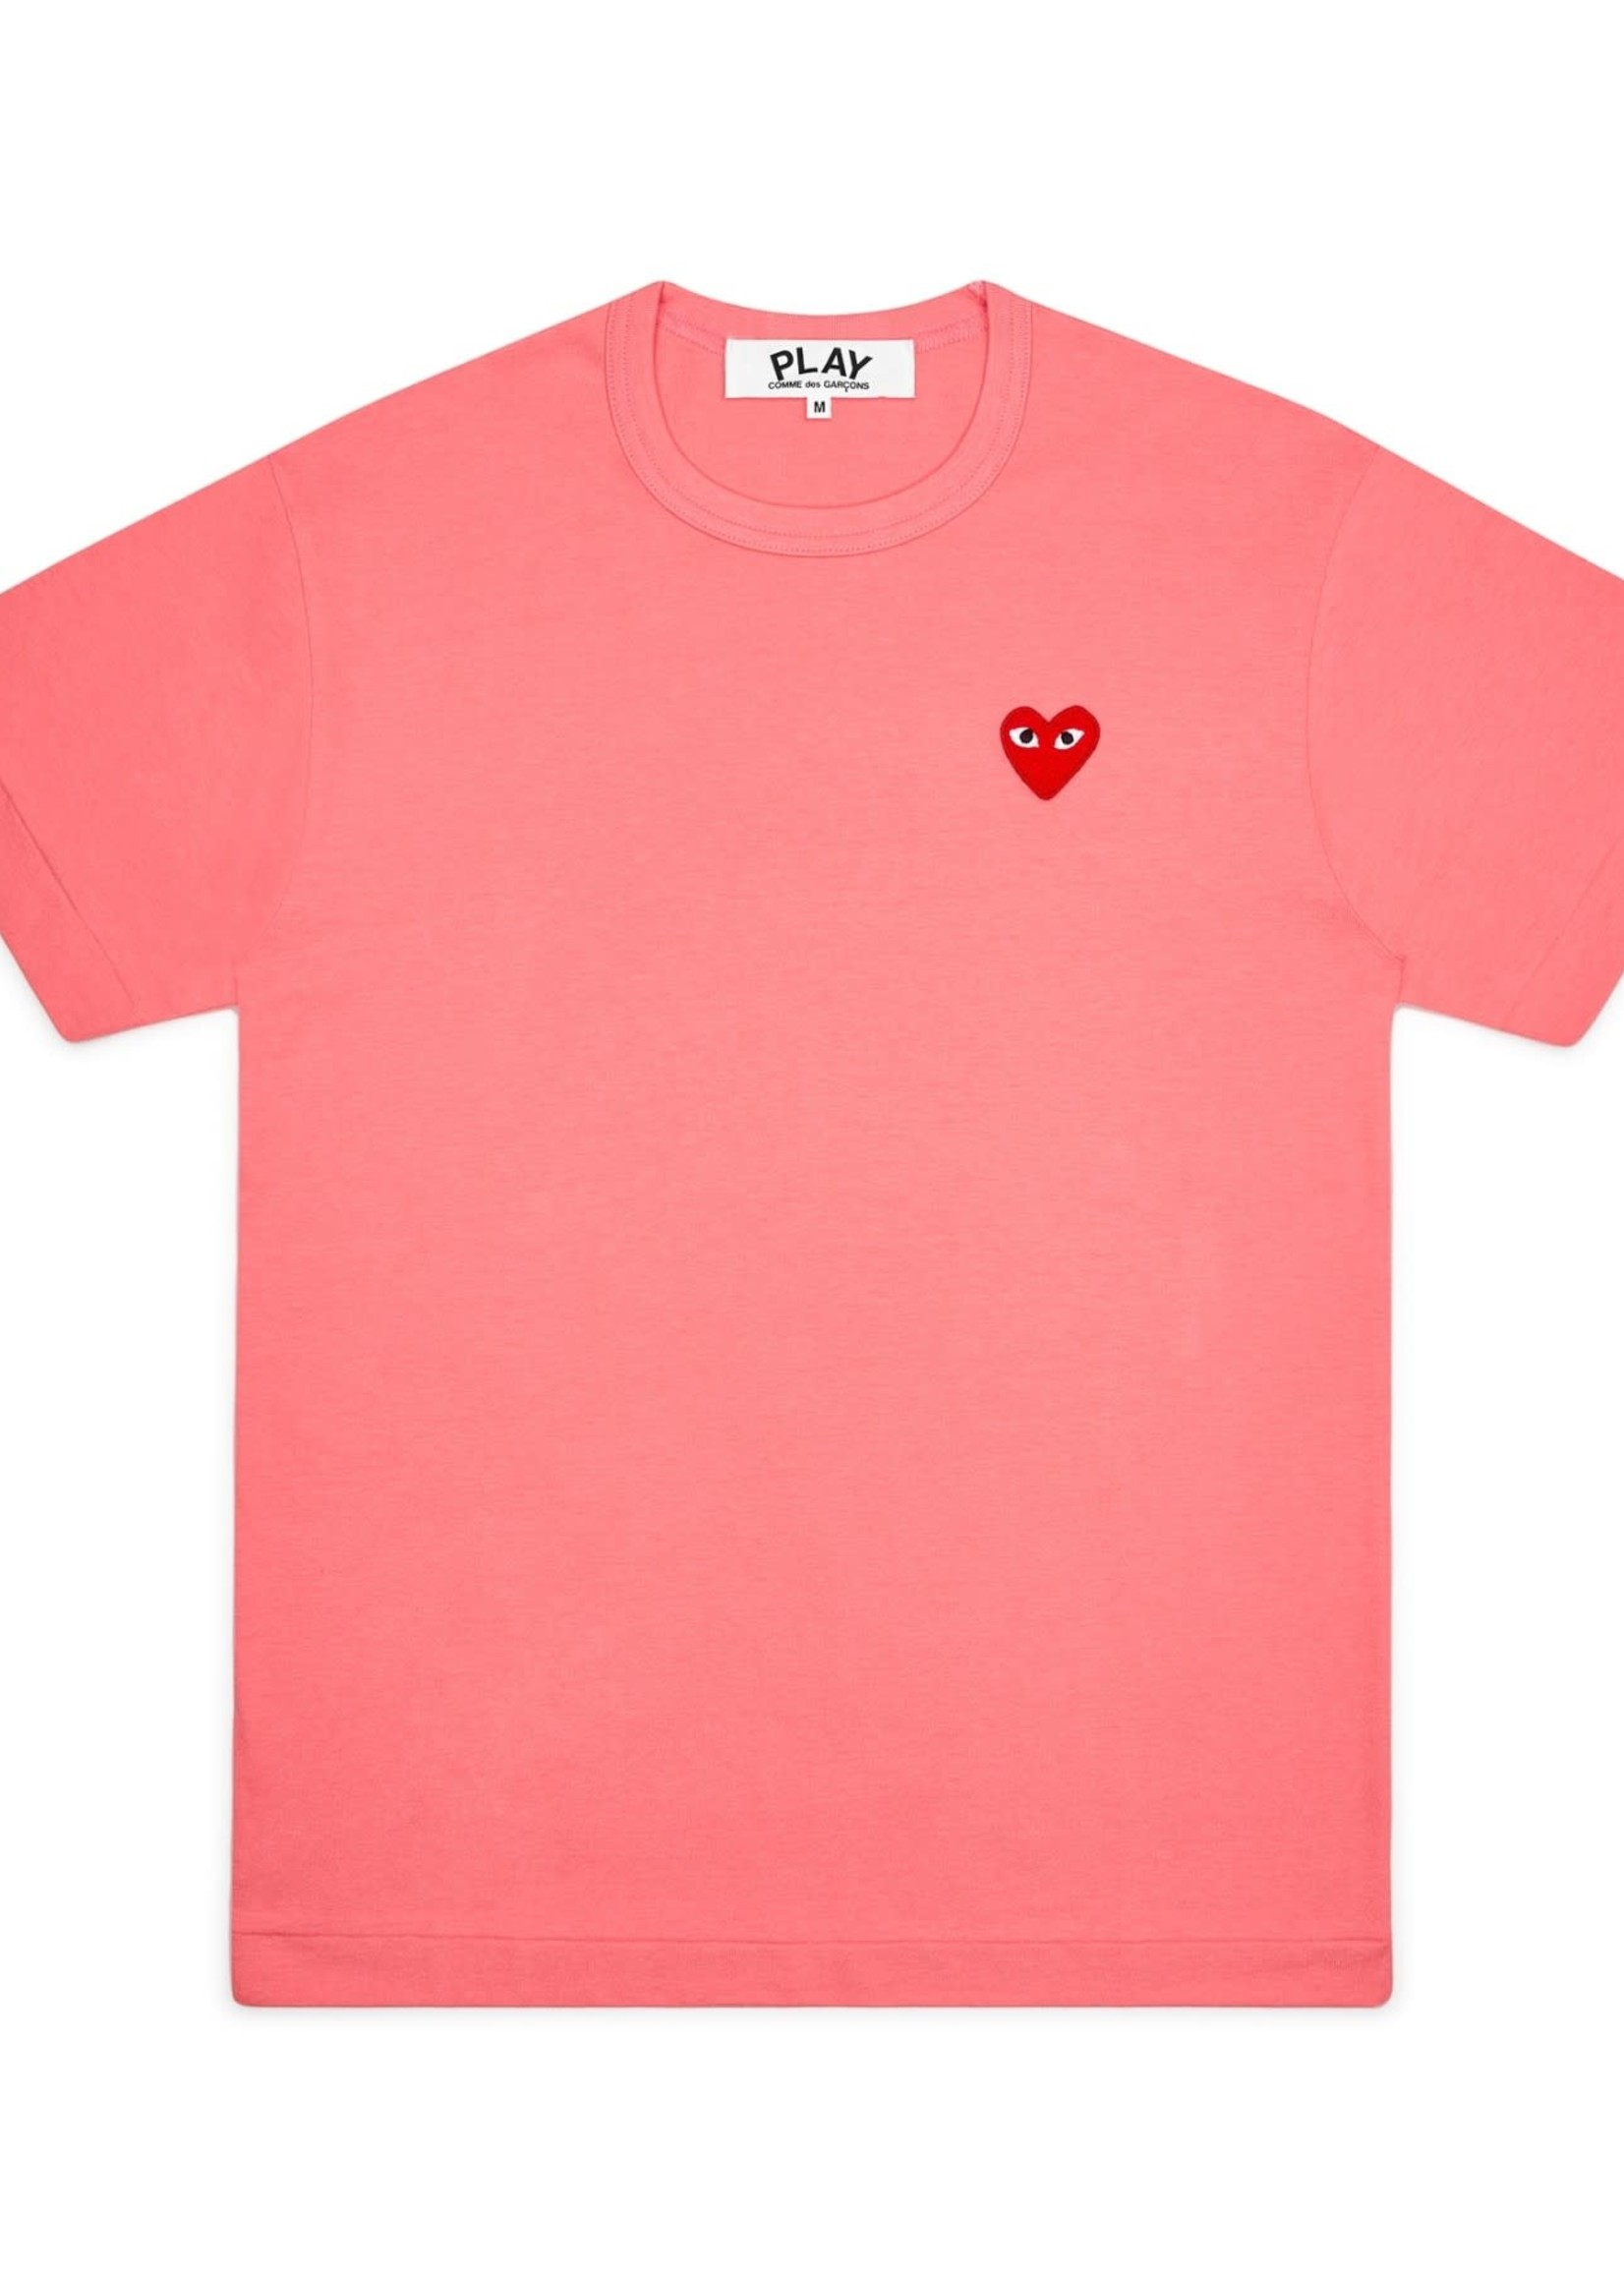 COMME des GARÇONS PLAY PINK TEE WITH RED HEART